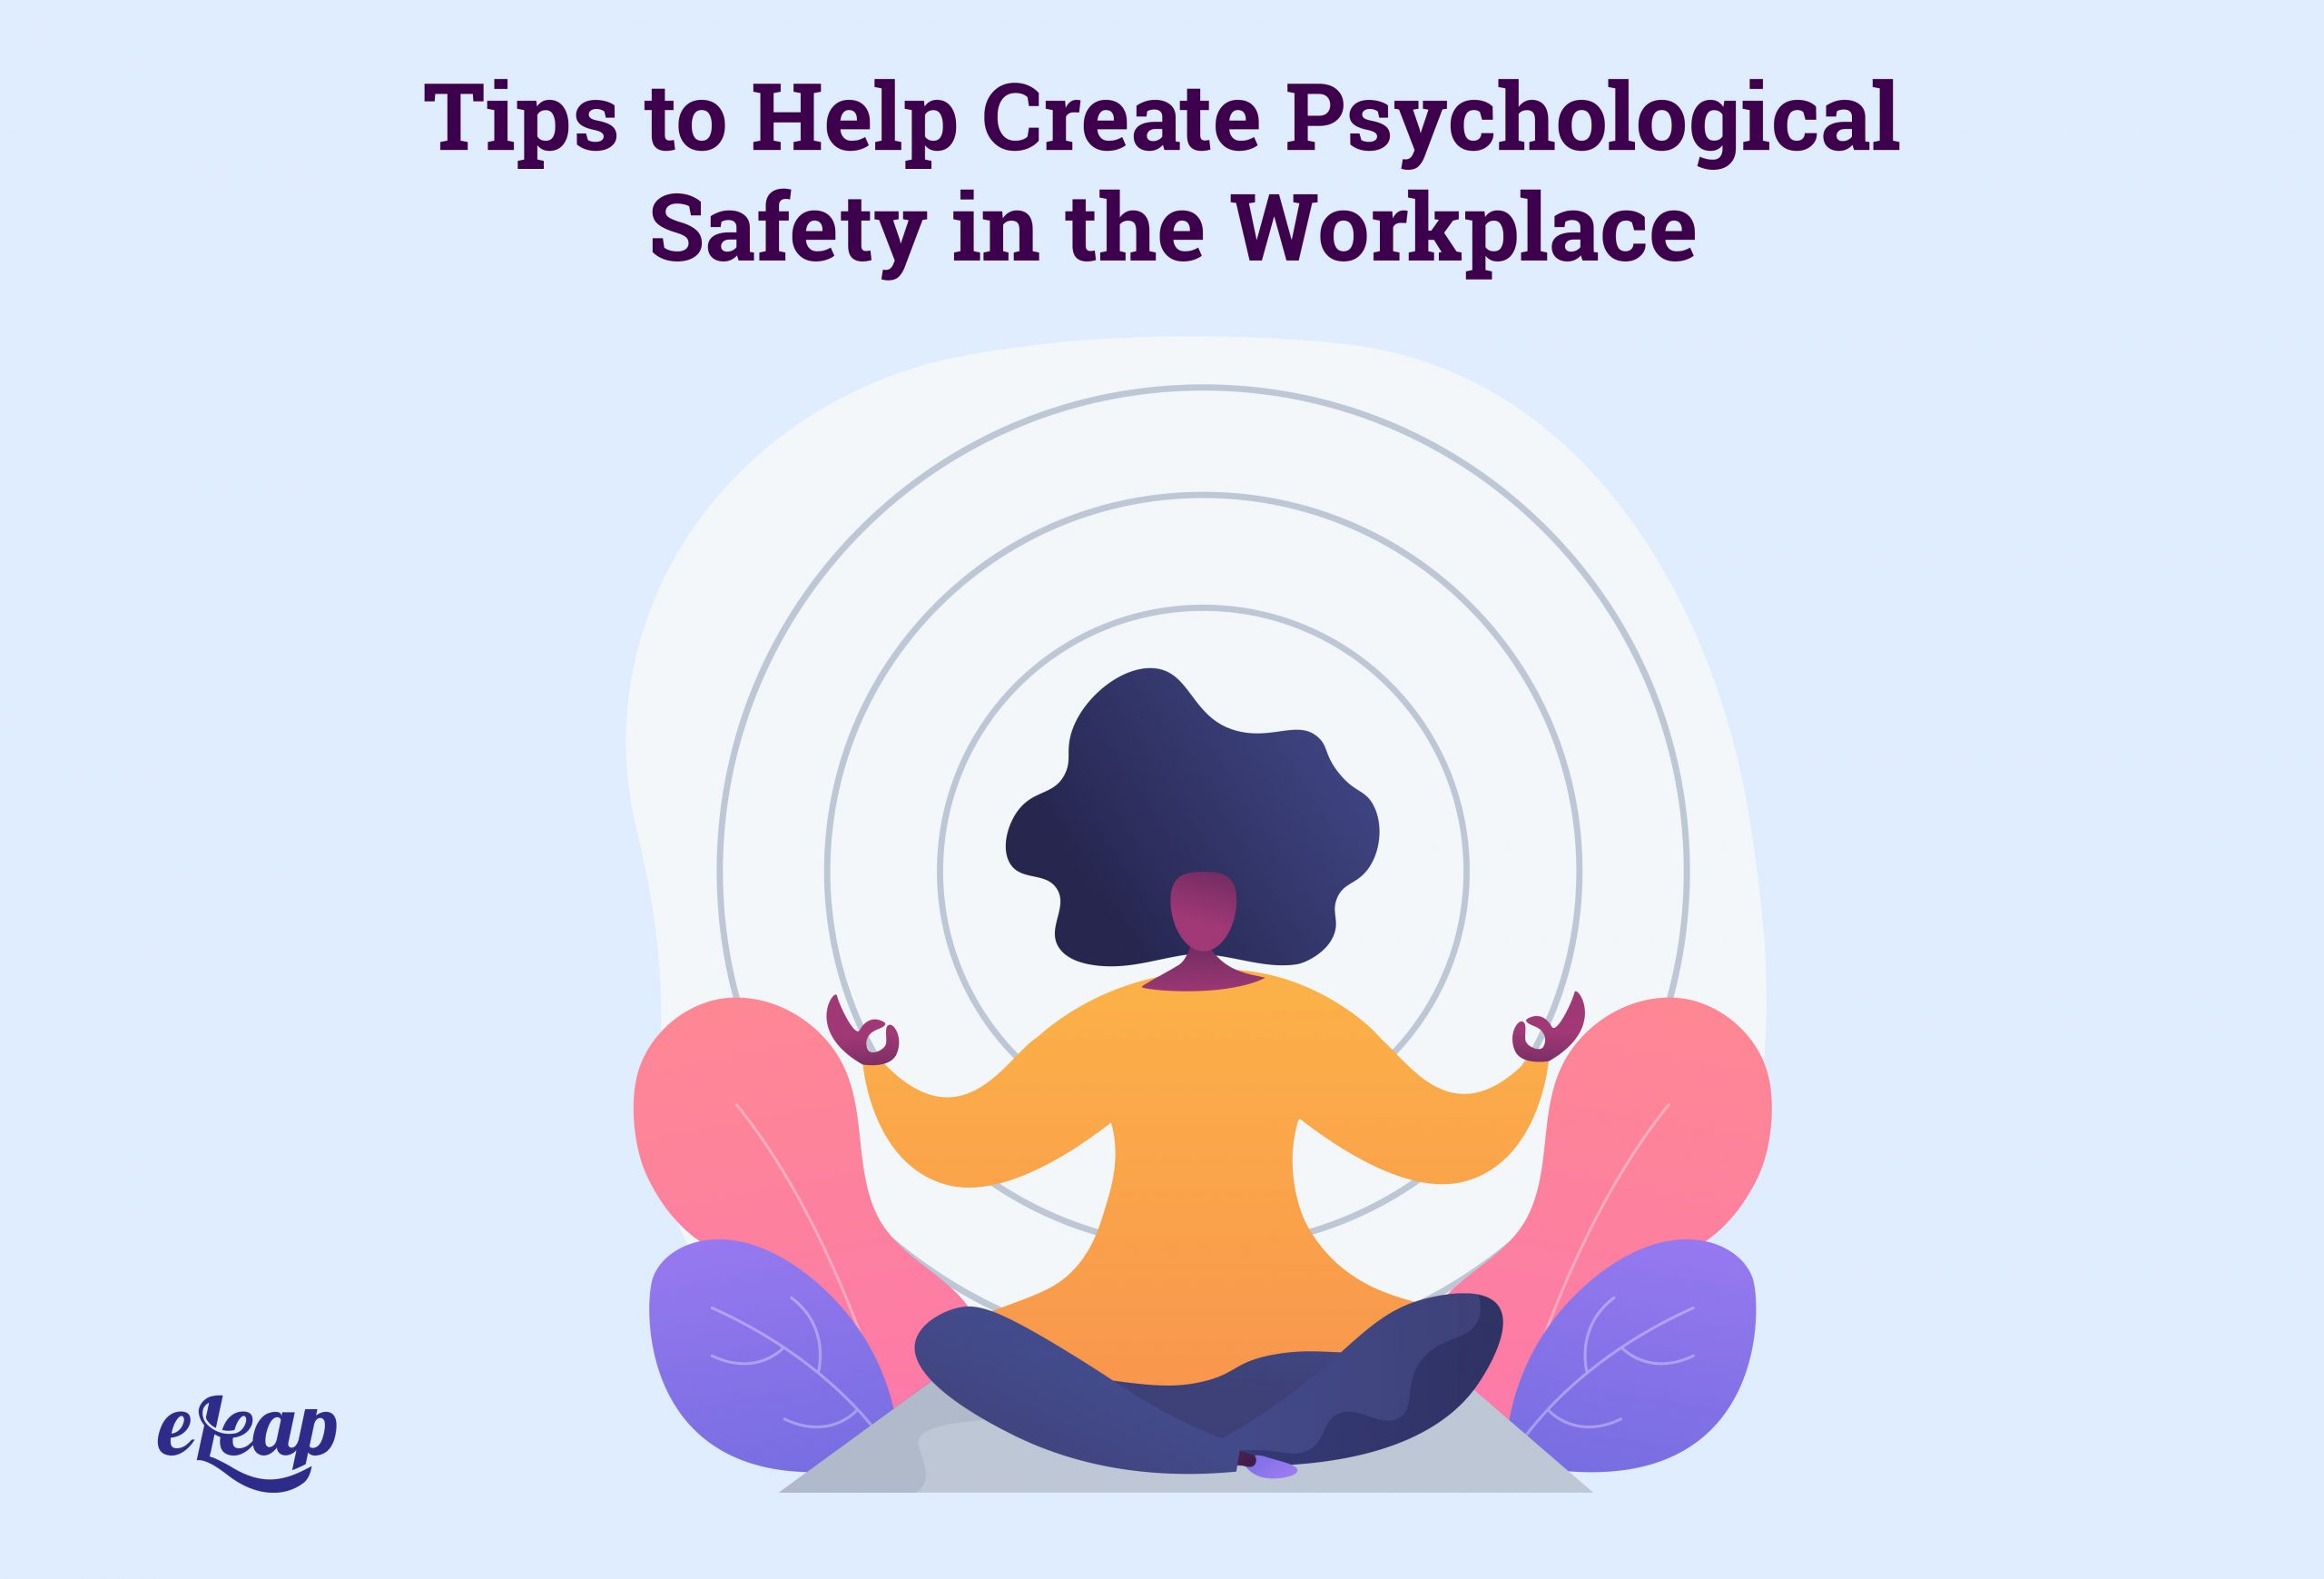 Tips to Help Create Psychological Safety in the Workplace